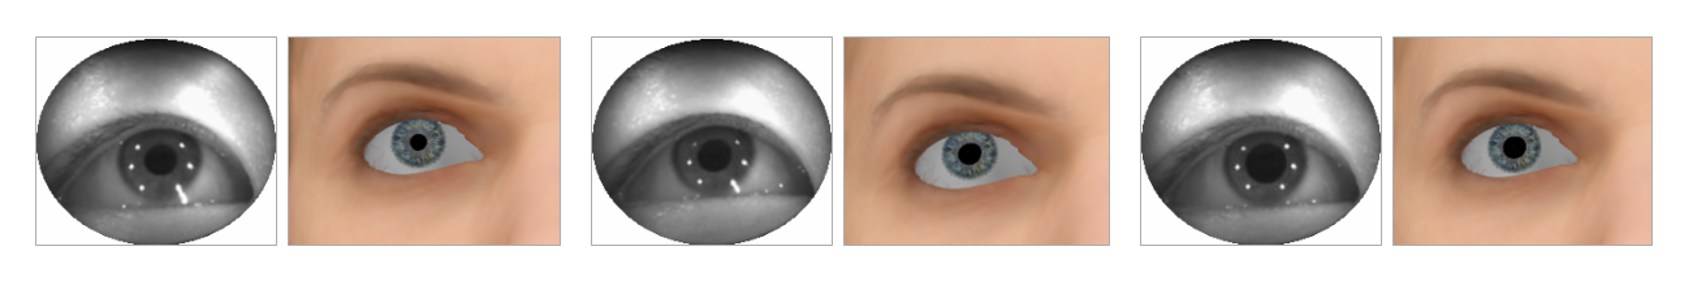 PDF] Real-time 3D Face-Eye Performance Capture of a Person